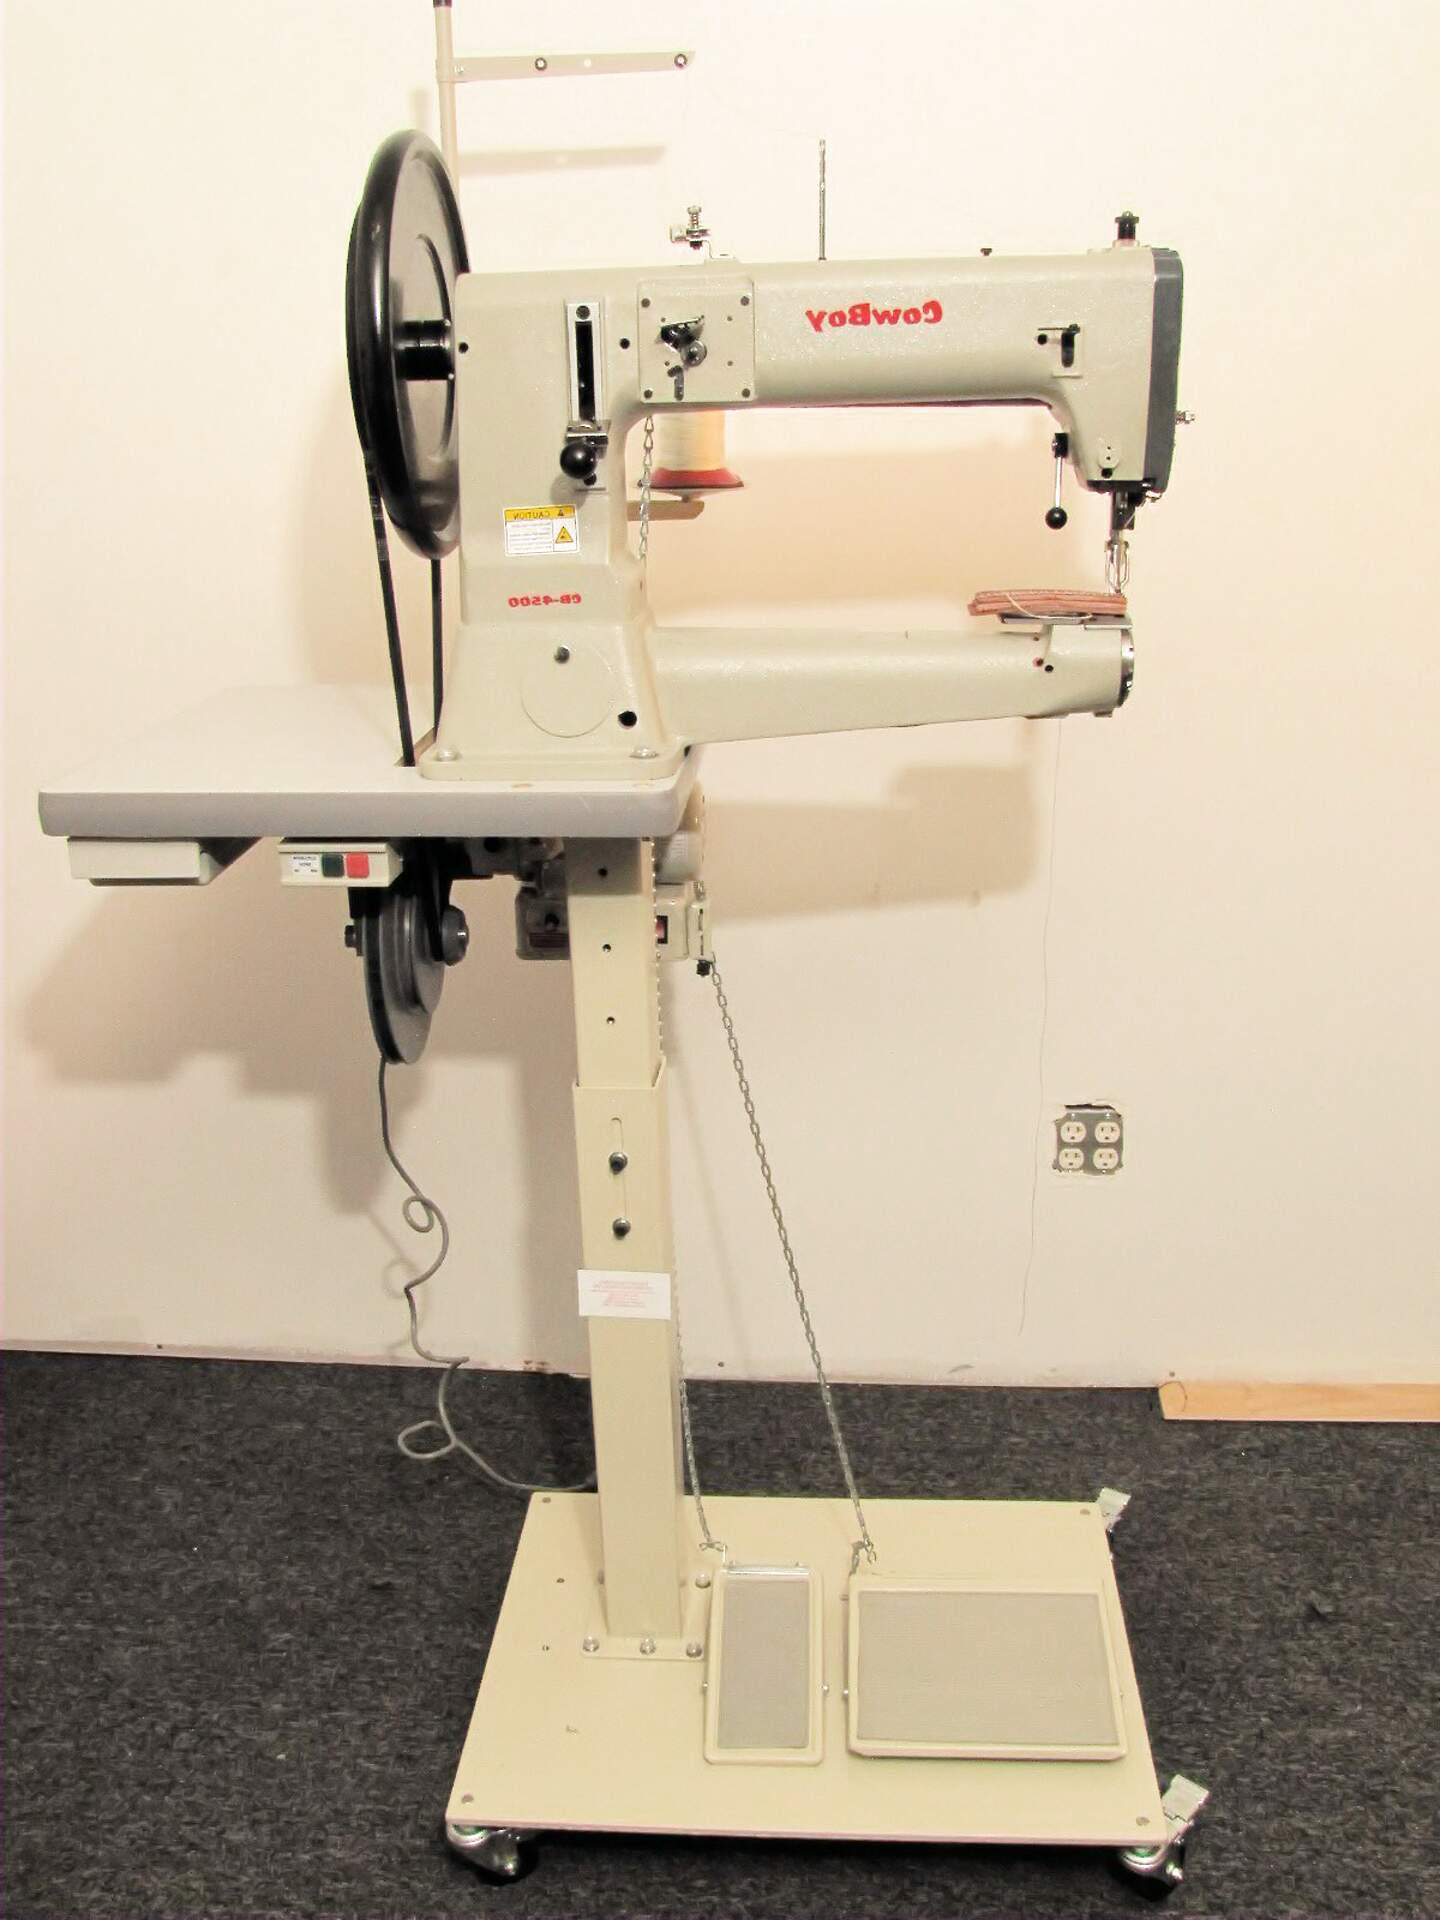 cowboy industrial sewing machine for sale